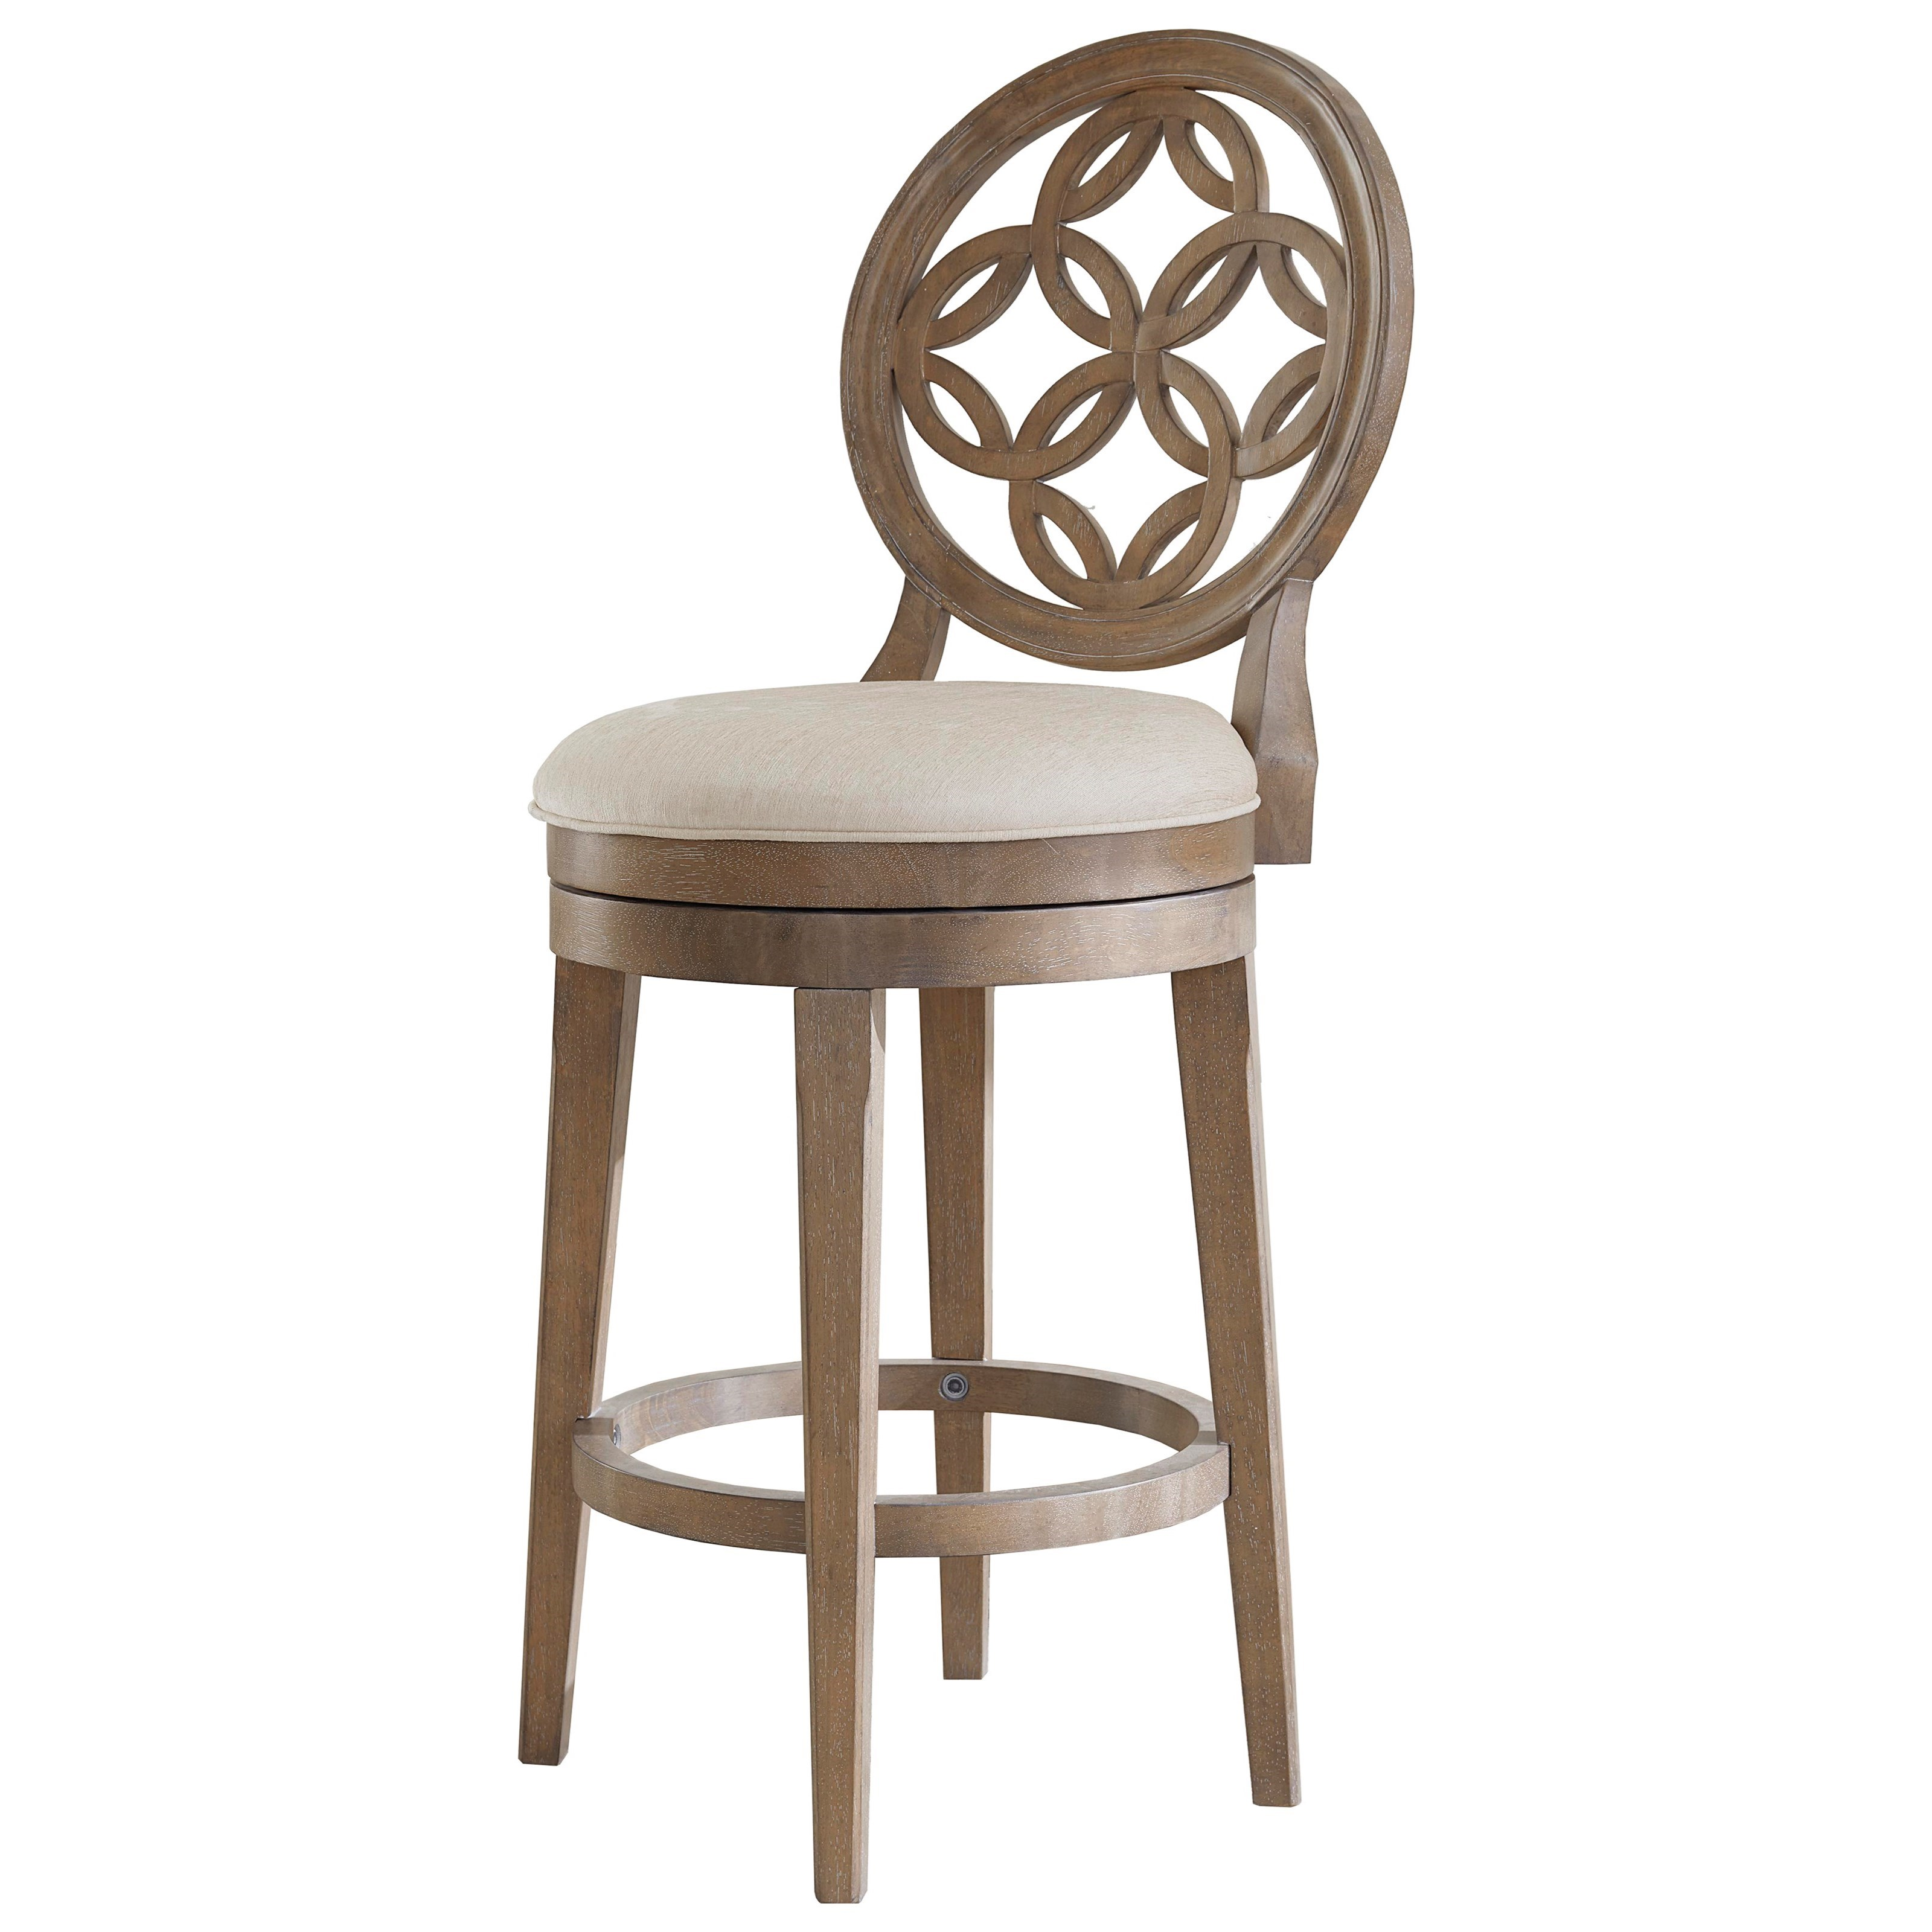 Hillsdale wood stools swivel counter height stool for Bar stool height